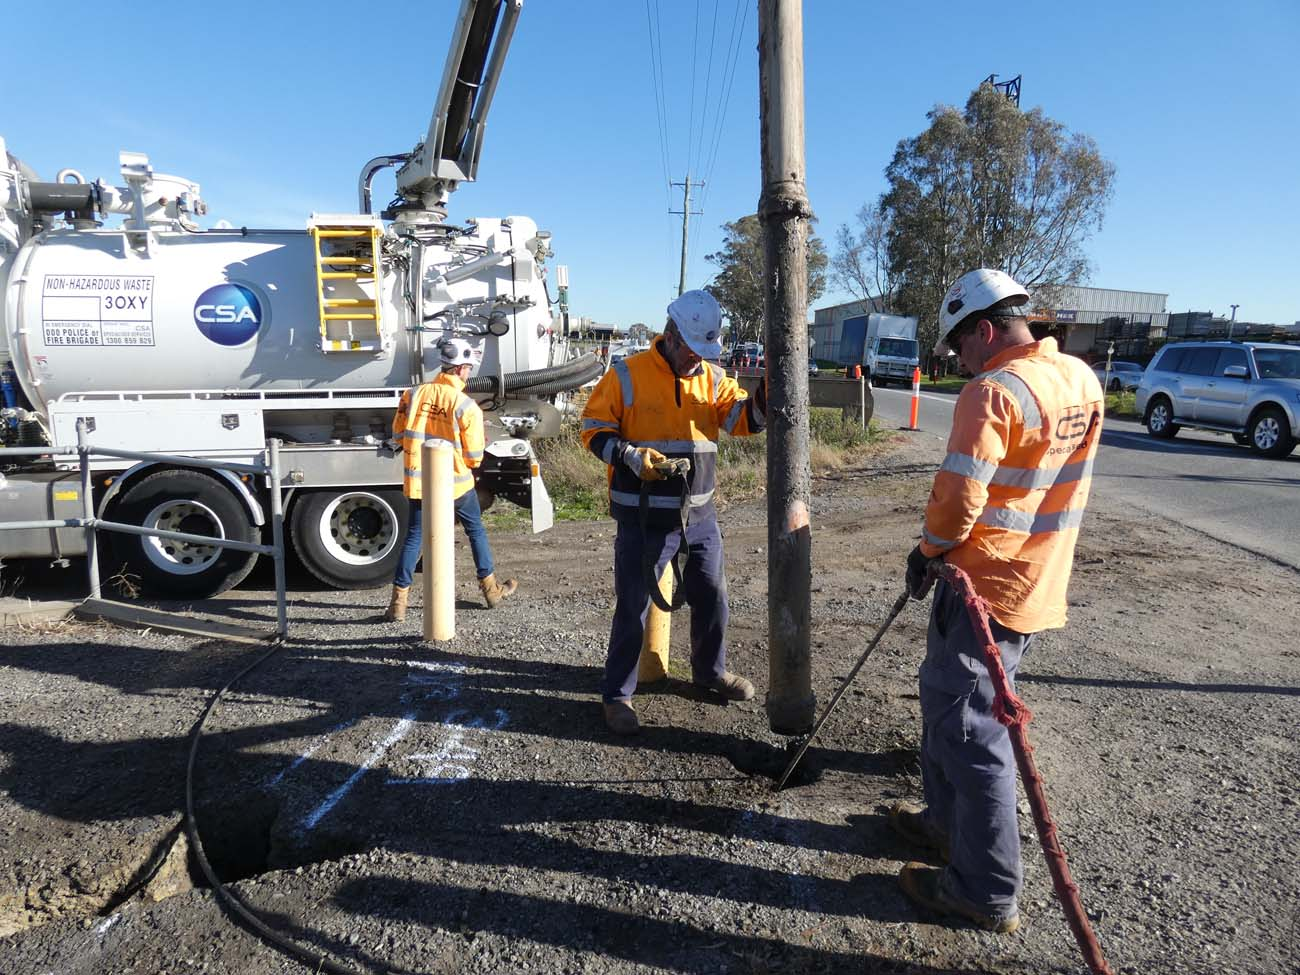 Non-Destructive Digging with Hydro Excavation - CSA Specialised Services